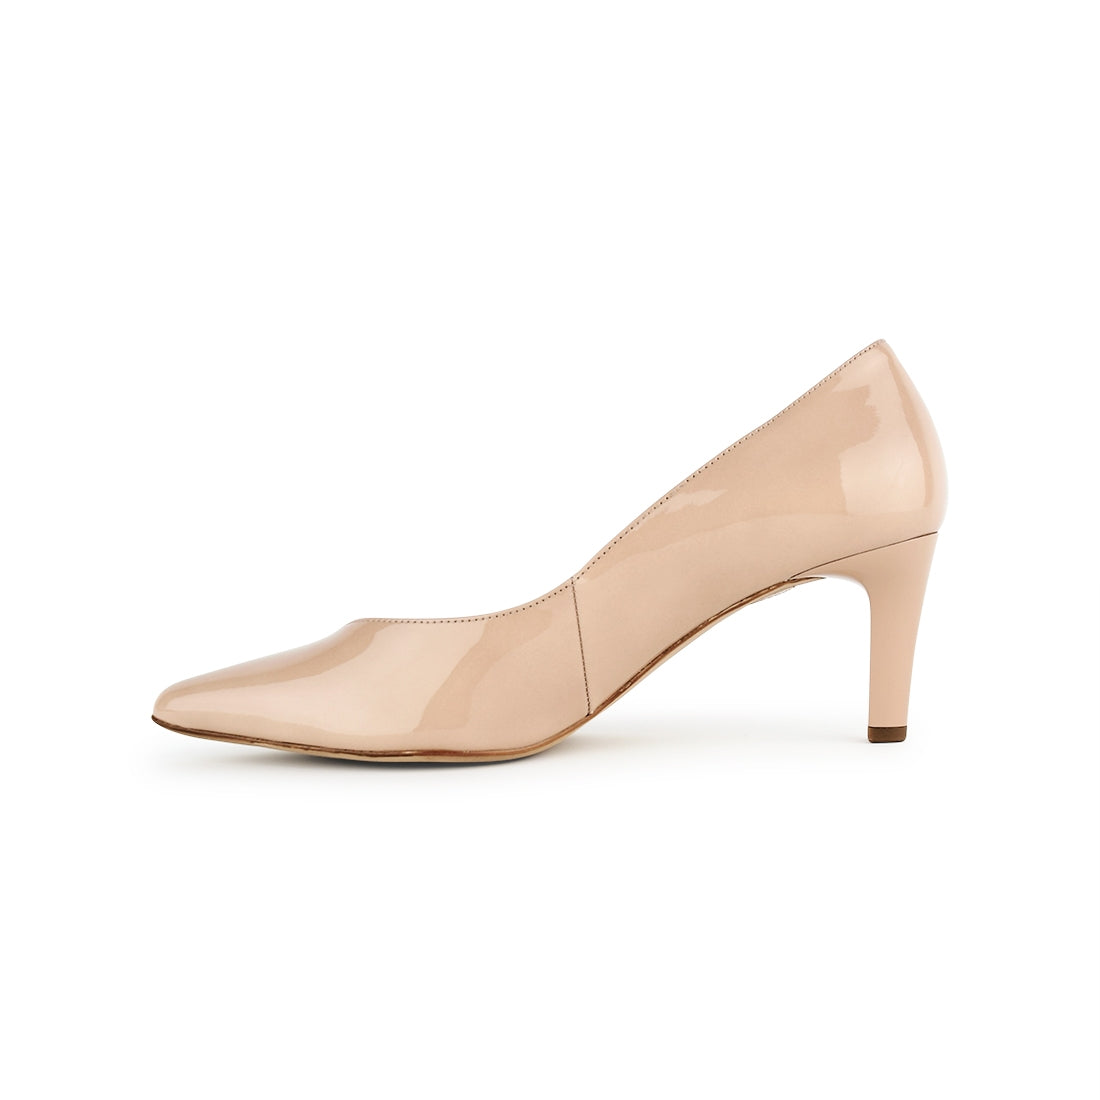 LILLY - Hogl Court Shoe Nude Patent